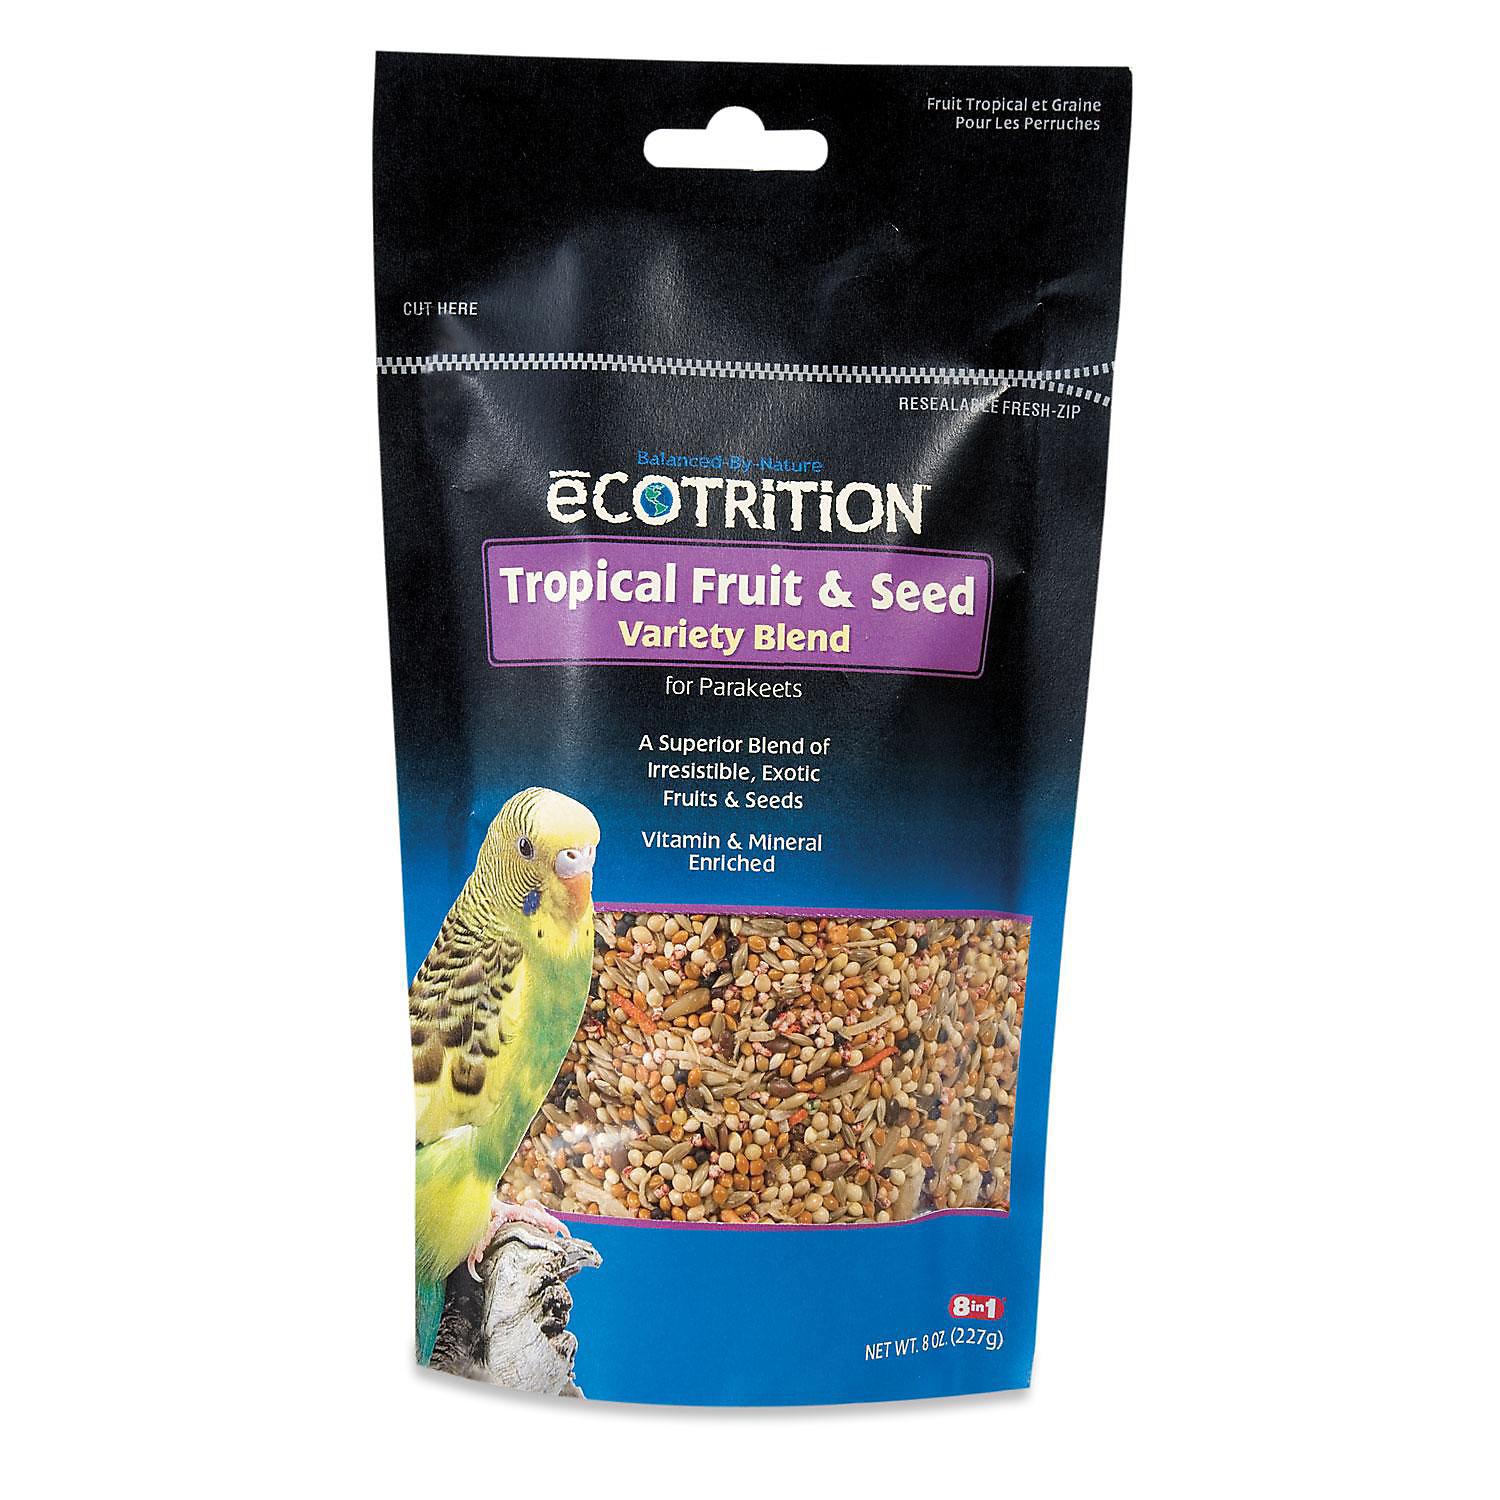 Ecotrition Tropical Fruit Seed Variety Blend For Parakeets